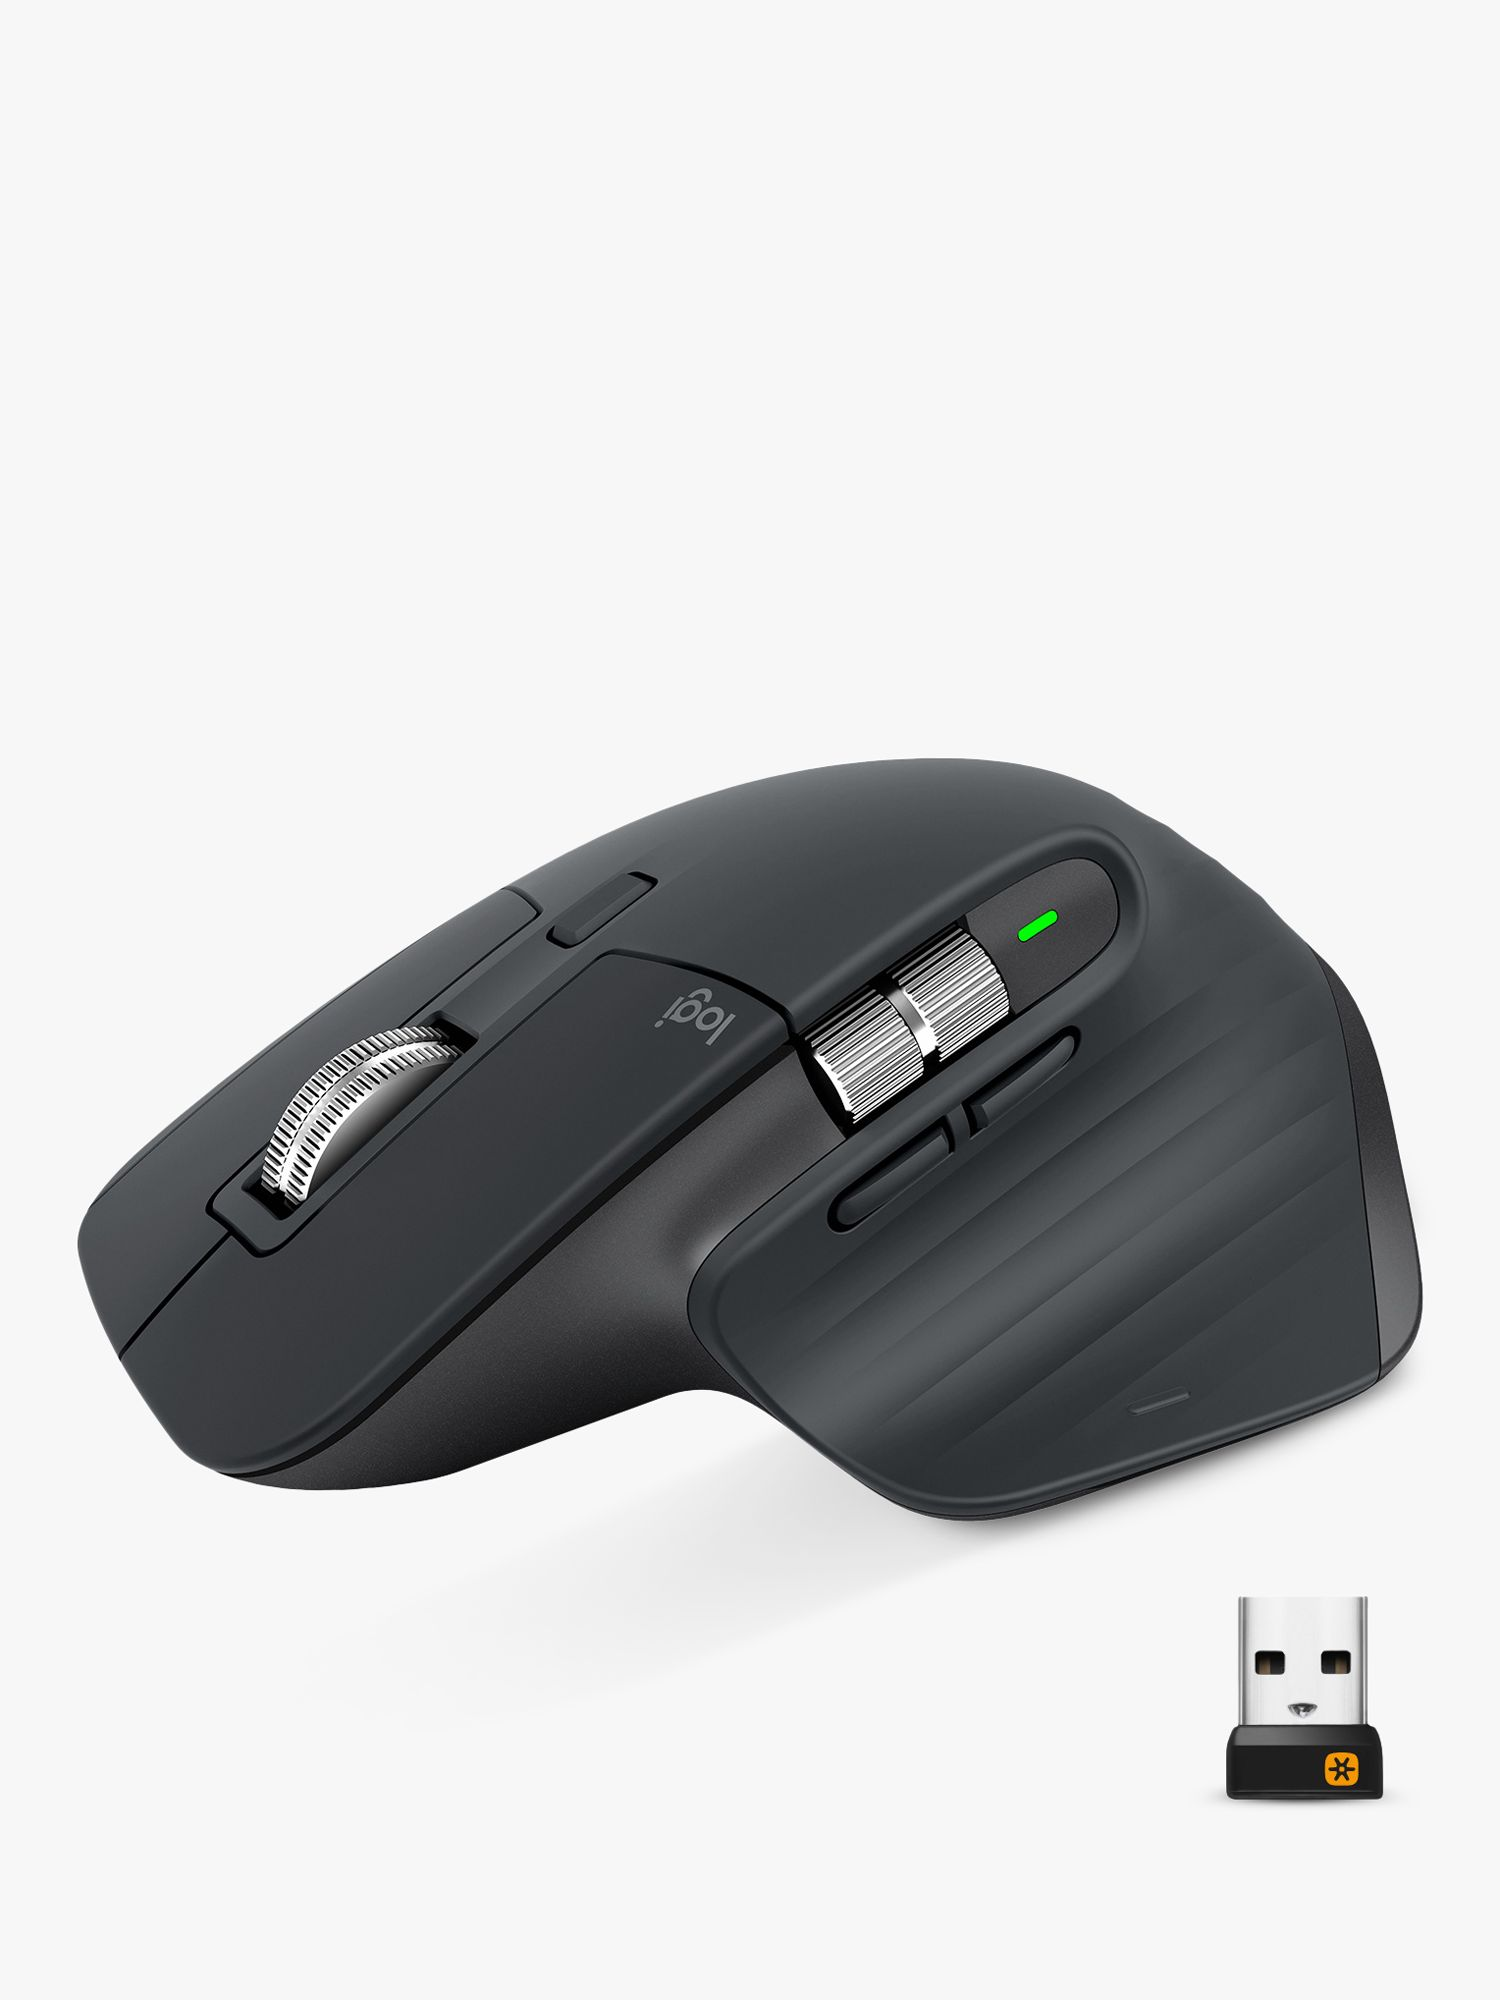 Logitech Logitech MX Master 3, Bluetooth Wireless Mouse, Black